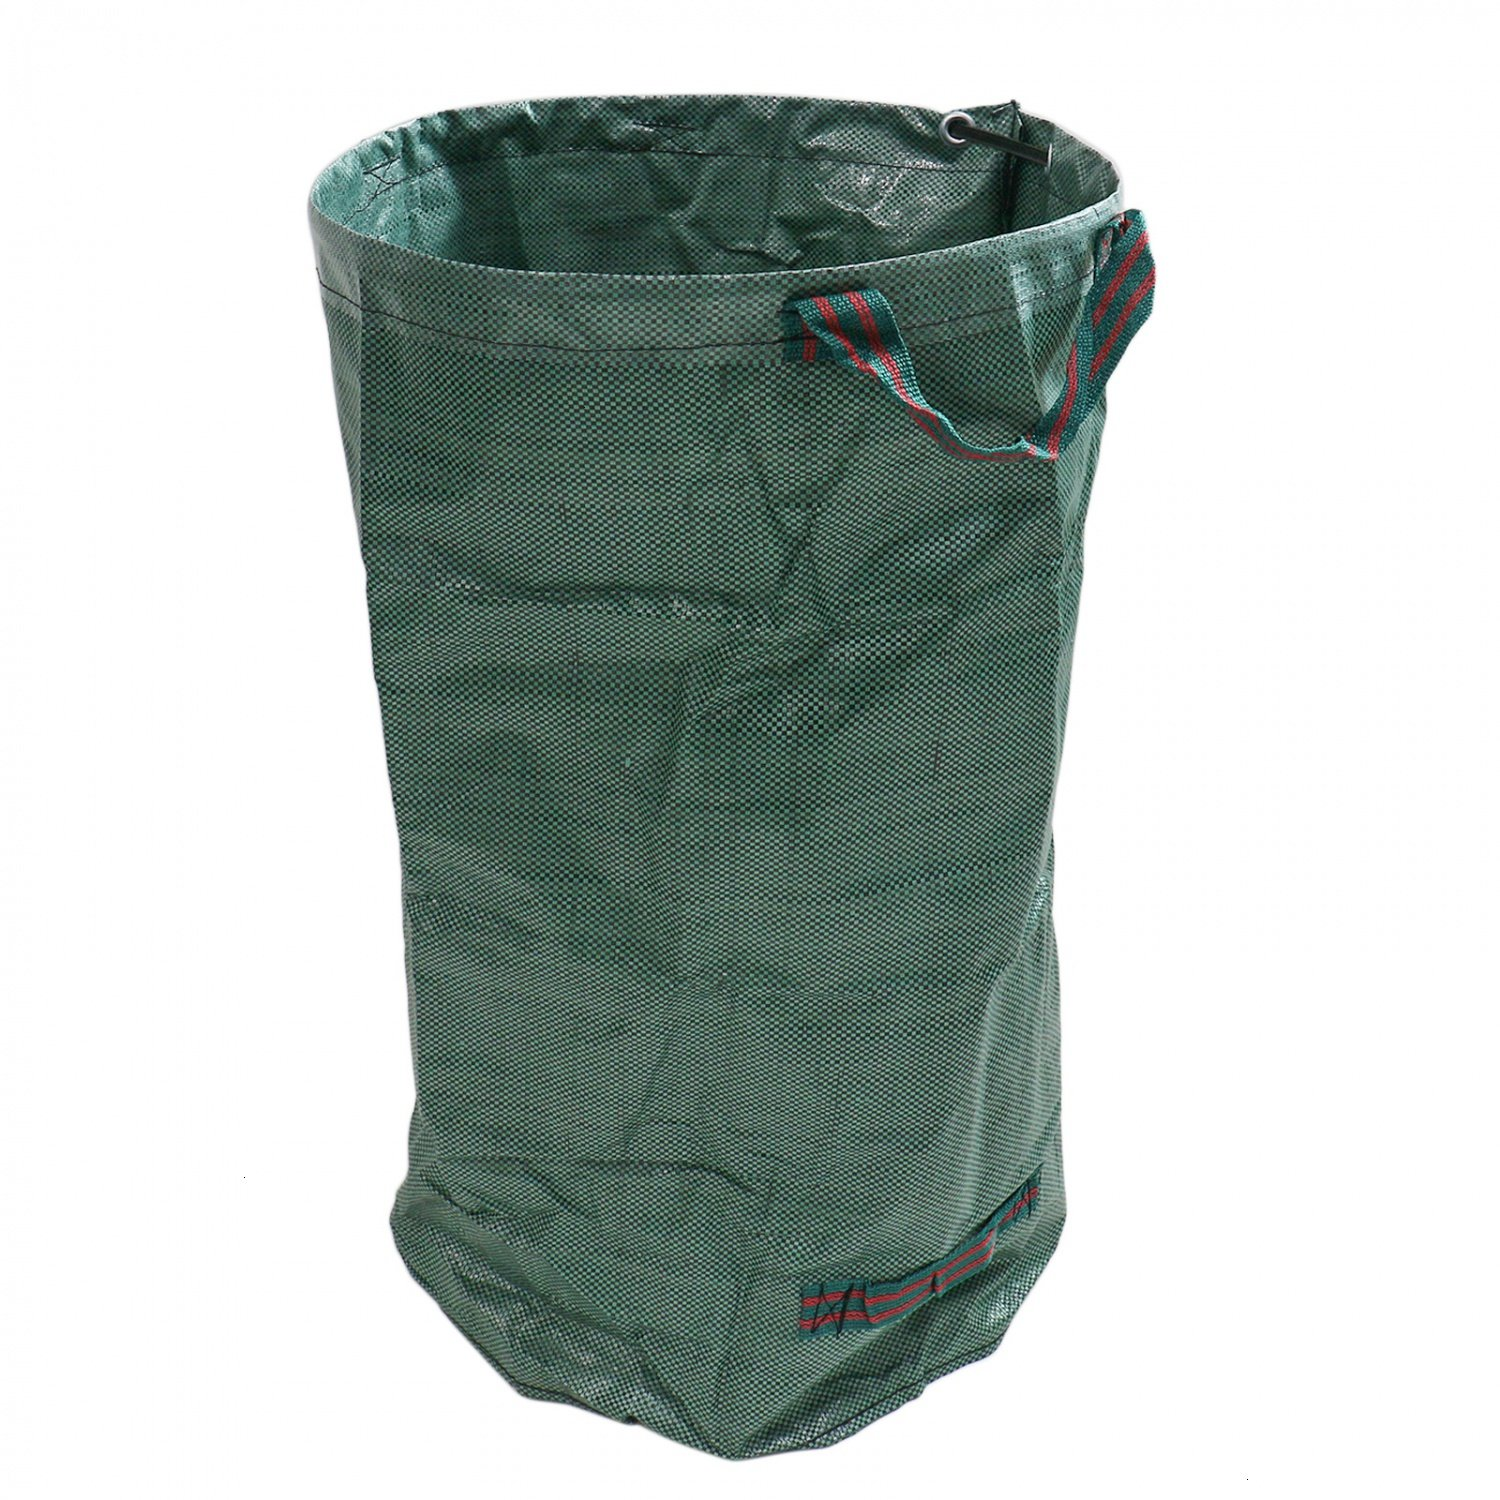 Buorsa 32 Gallons Garden Waste Bags Garden Leaf Waste Bag Heavy Duty Collapsible Basket with Handles